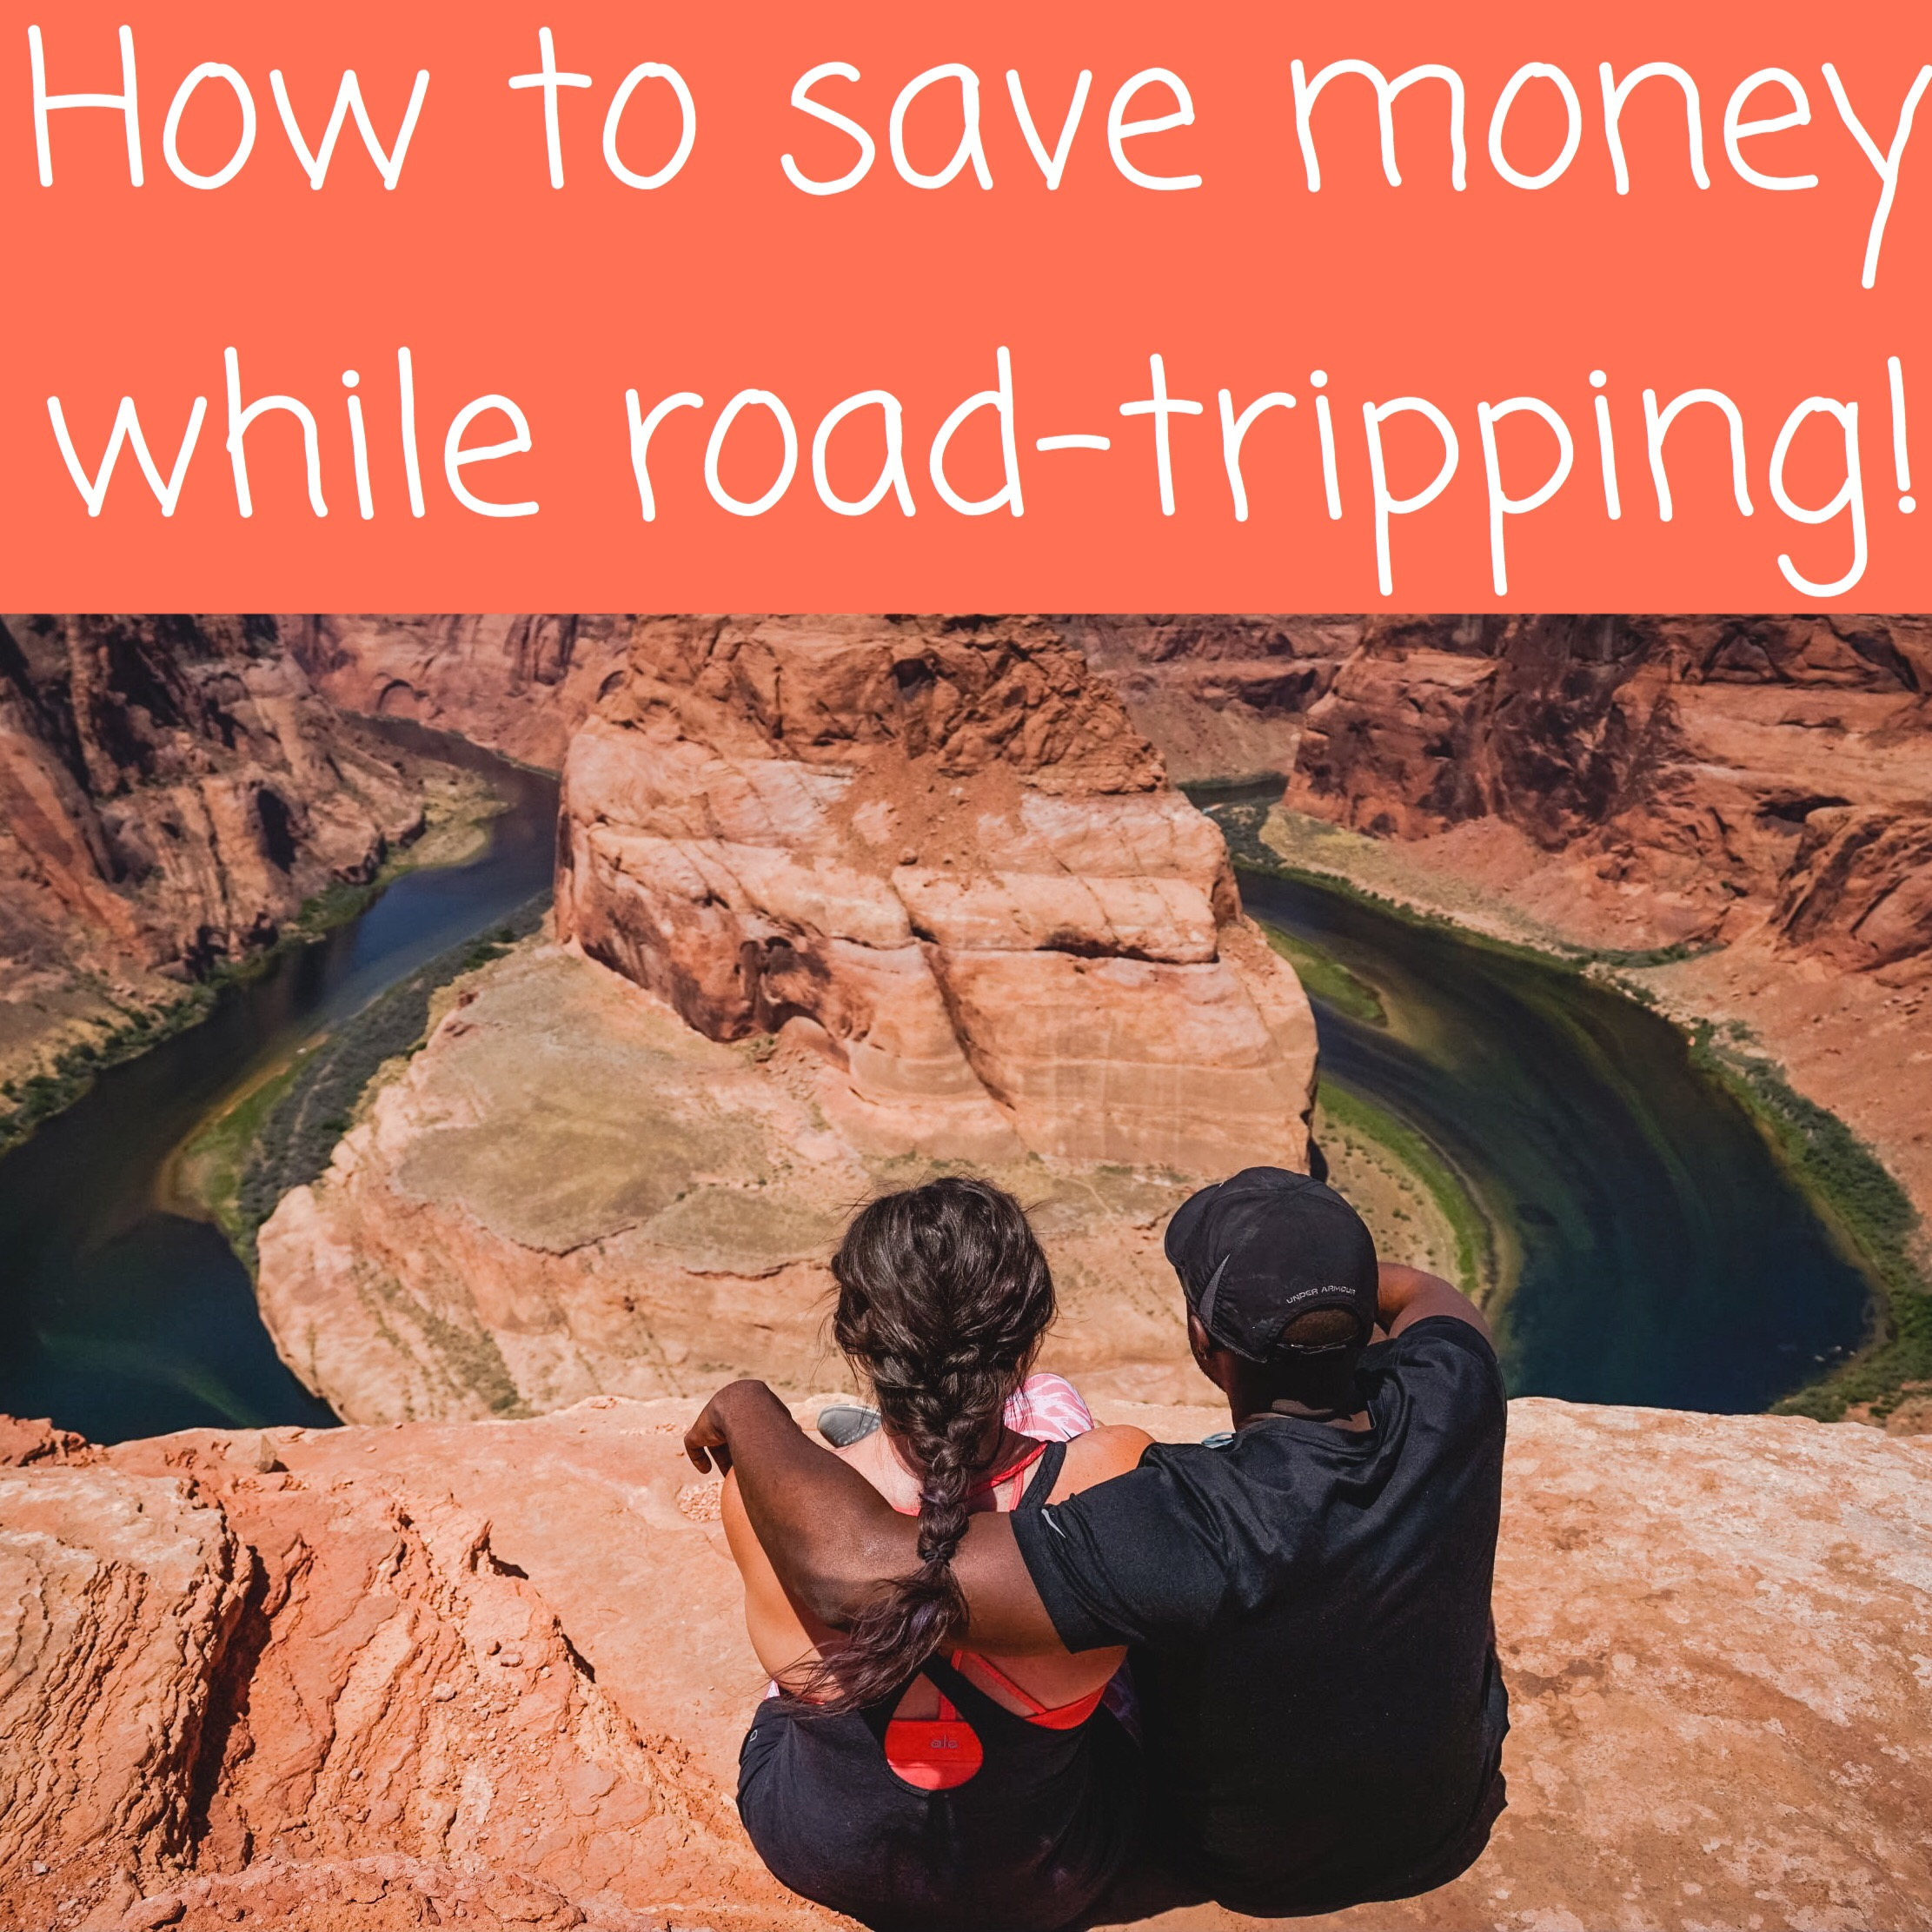 How To Save Money While Road-Tripping